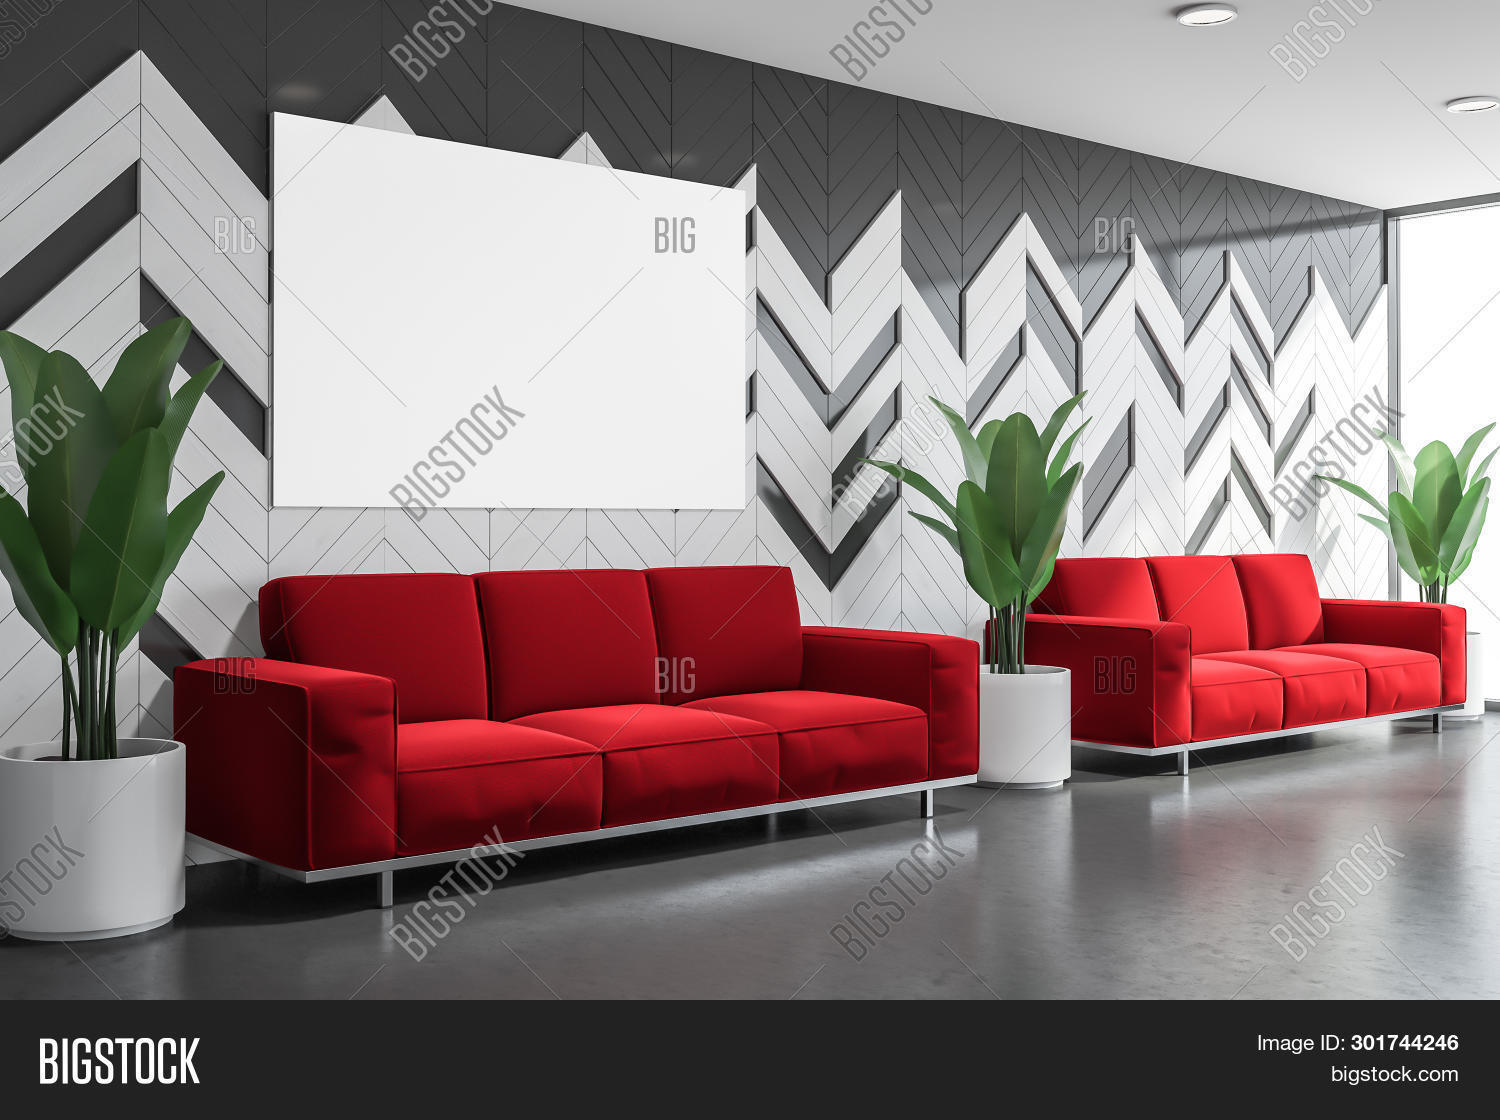 3d,architecture,banner,building,business,center,comfortable,company,concrete,copy,corporate,couch,decoration,design,elegant,empty,entrance,estate,floor,hall,hotel,illustration,interior,light,lobby,lounge,luxury,mock,modern,nobody,office,plant,poster,public,real,render,rendering,rest,room,sofa,space,spacious,stylish,up,urban,waiting,wall,white,wood,wooden